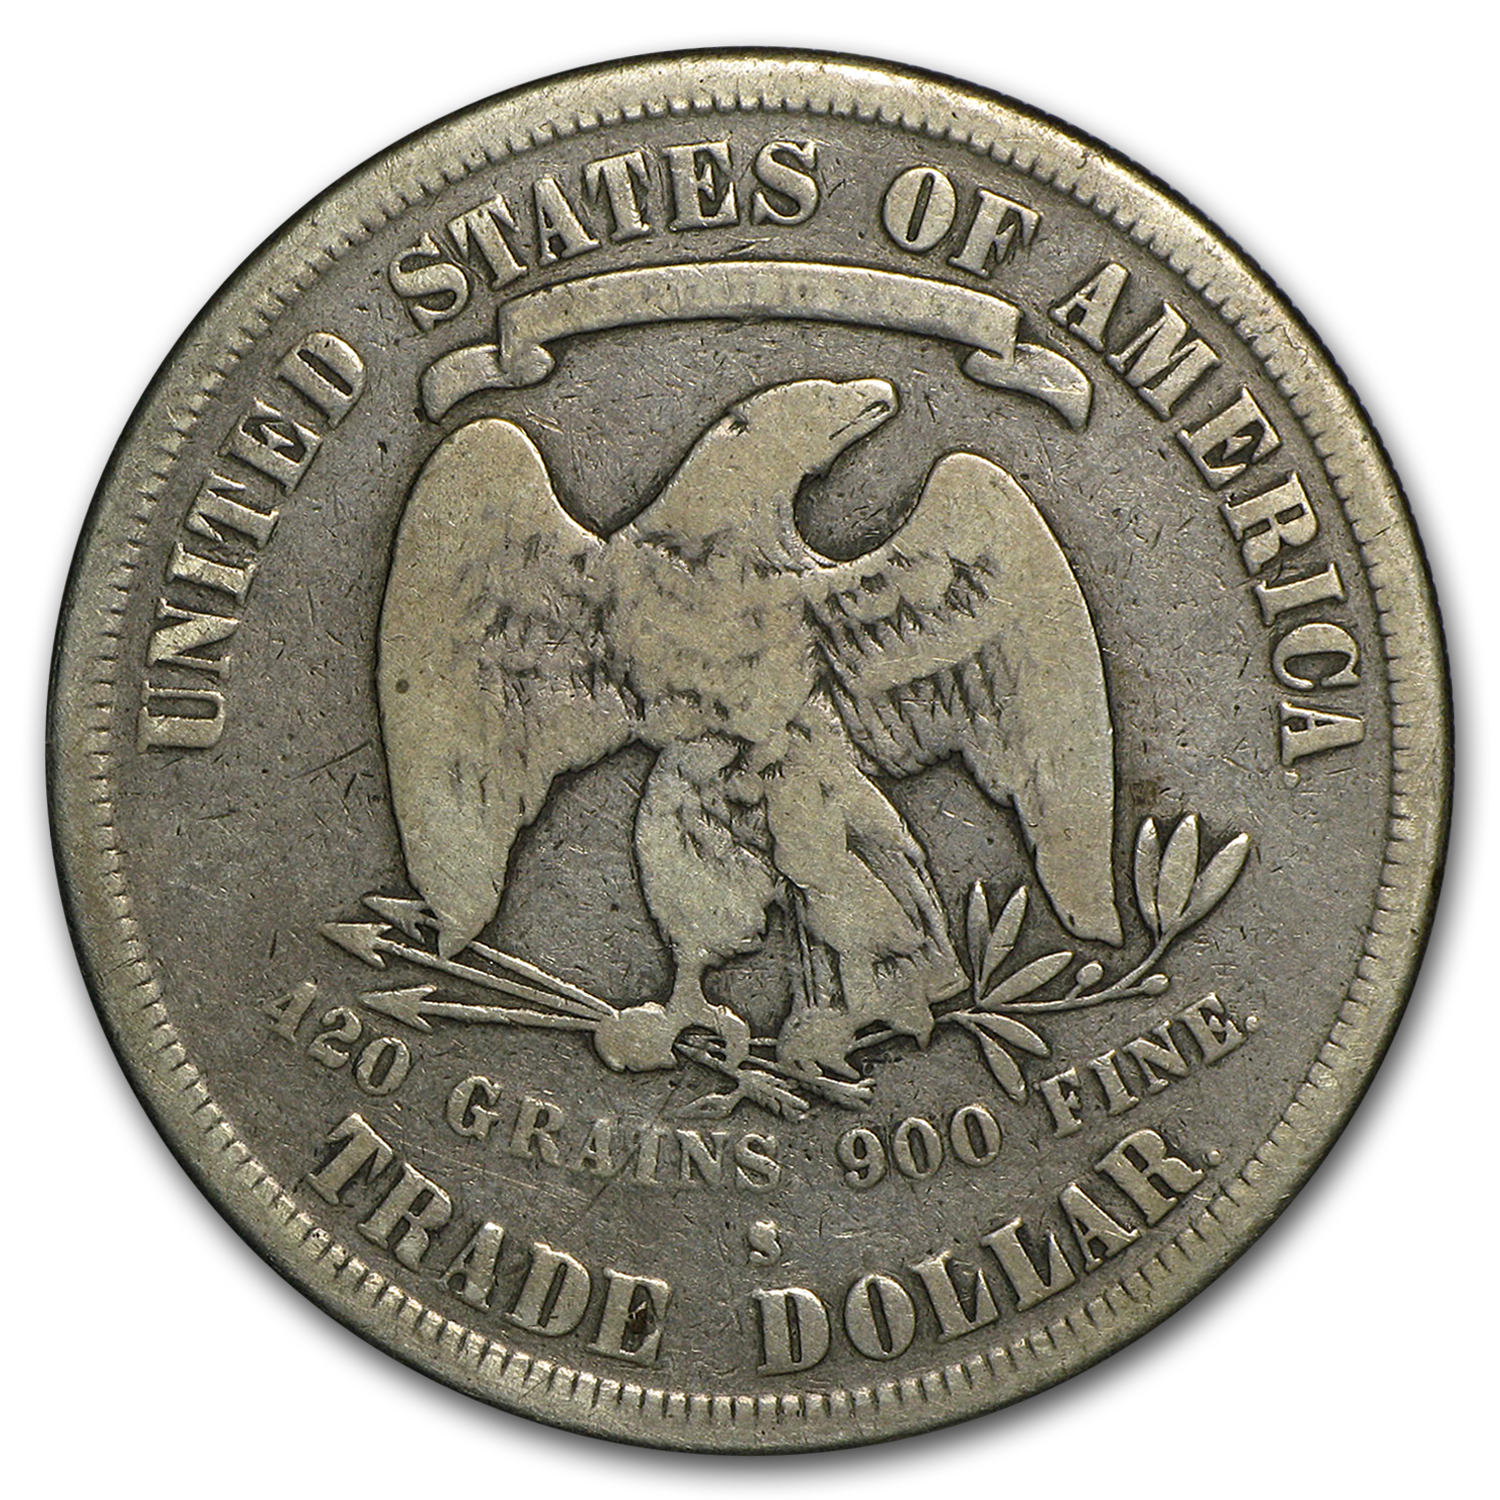 1873-1878 Trade Dollar - Very Good